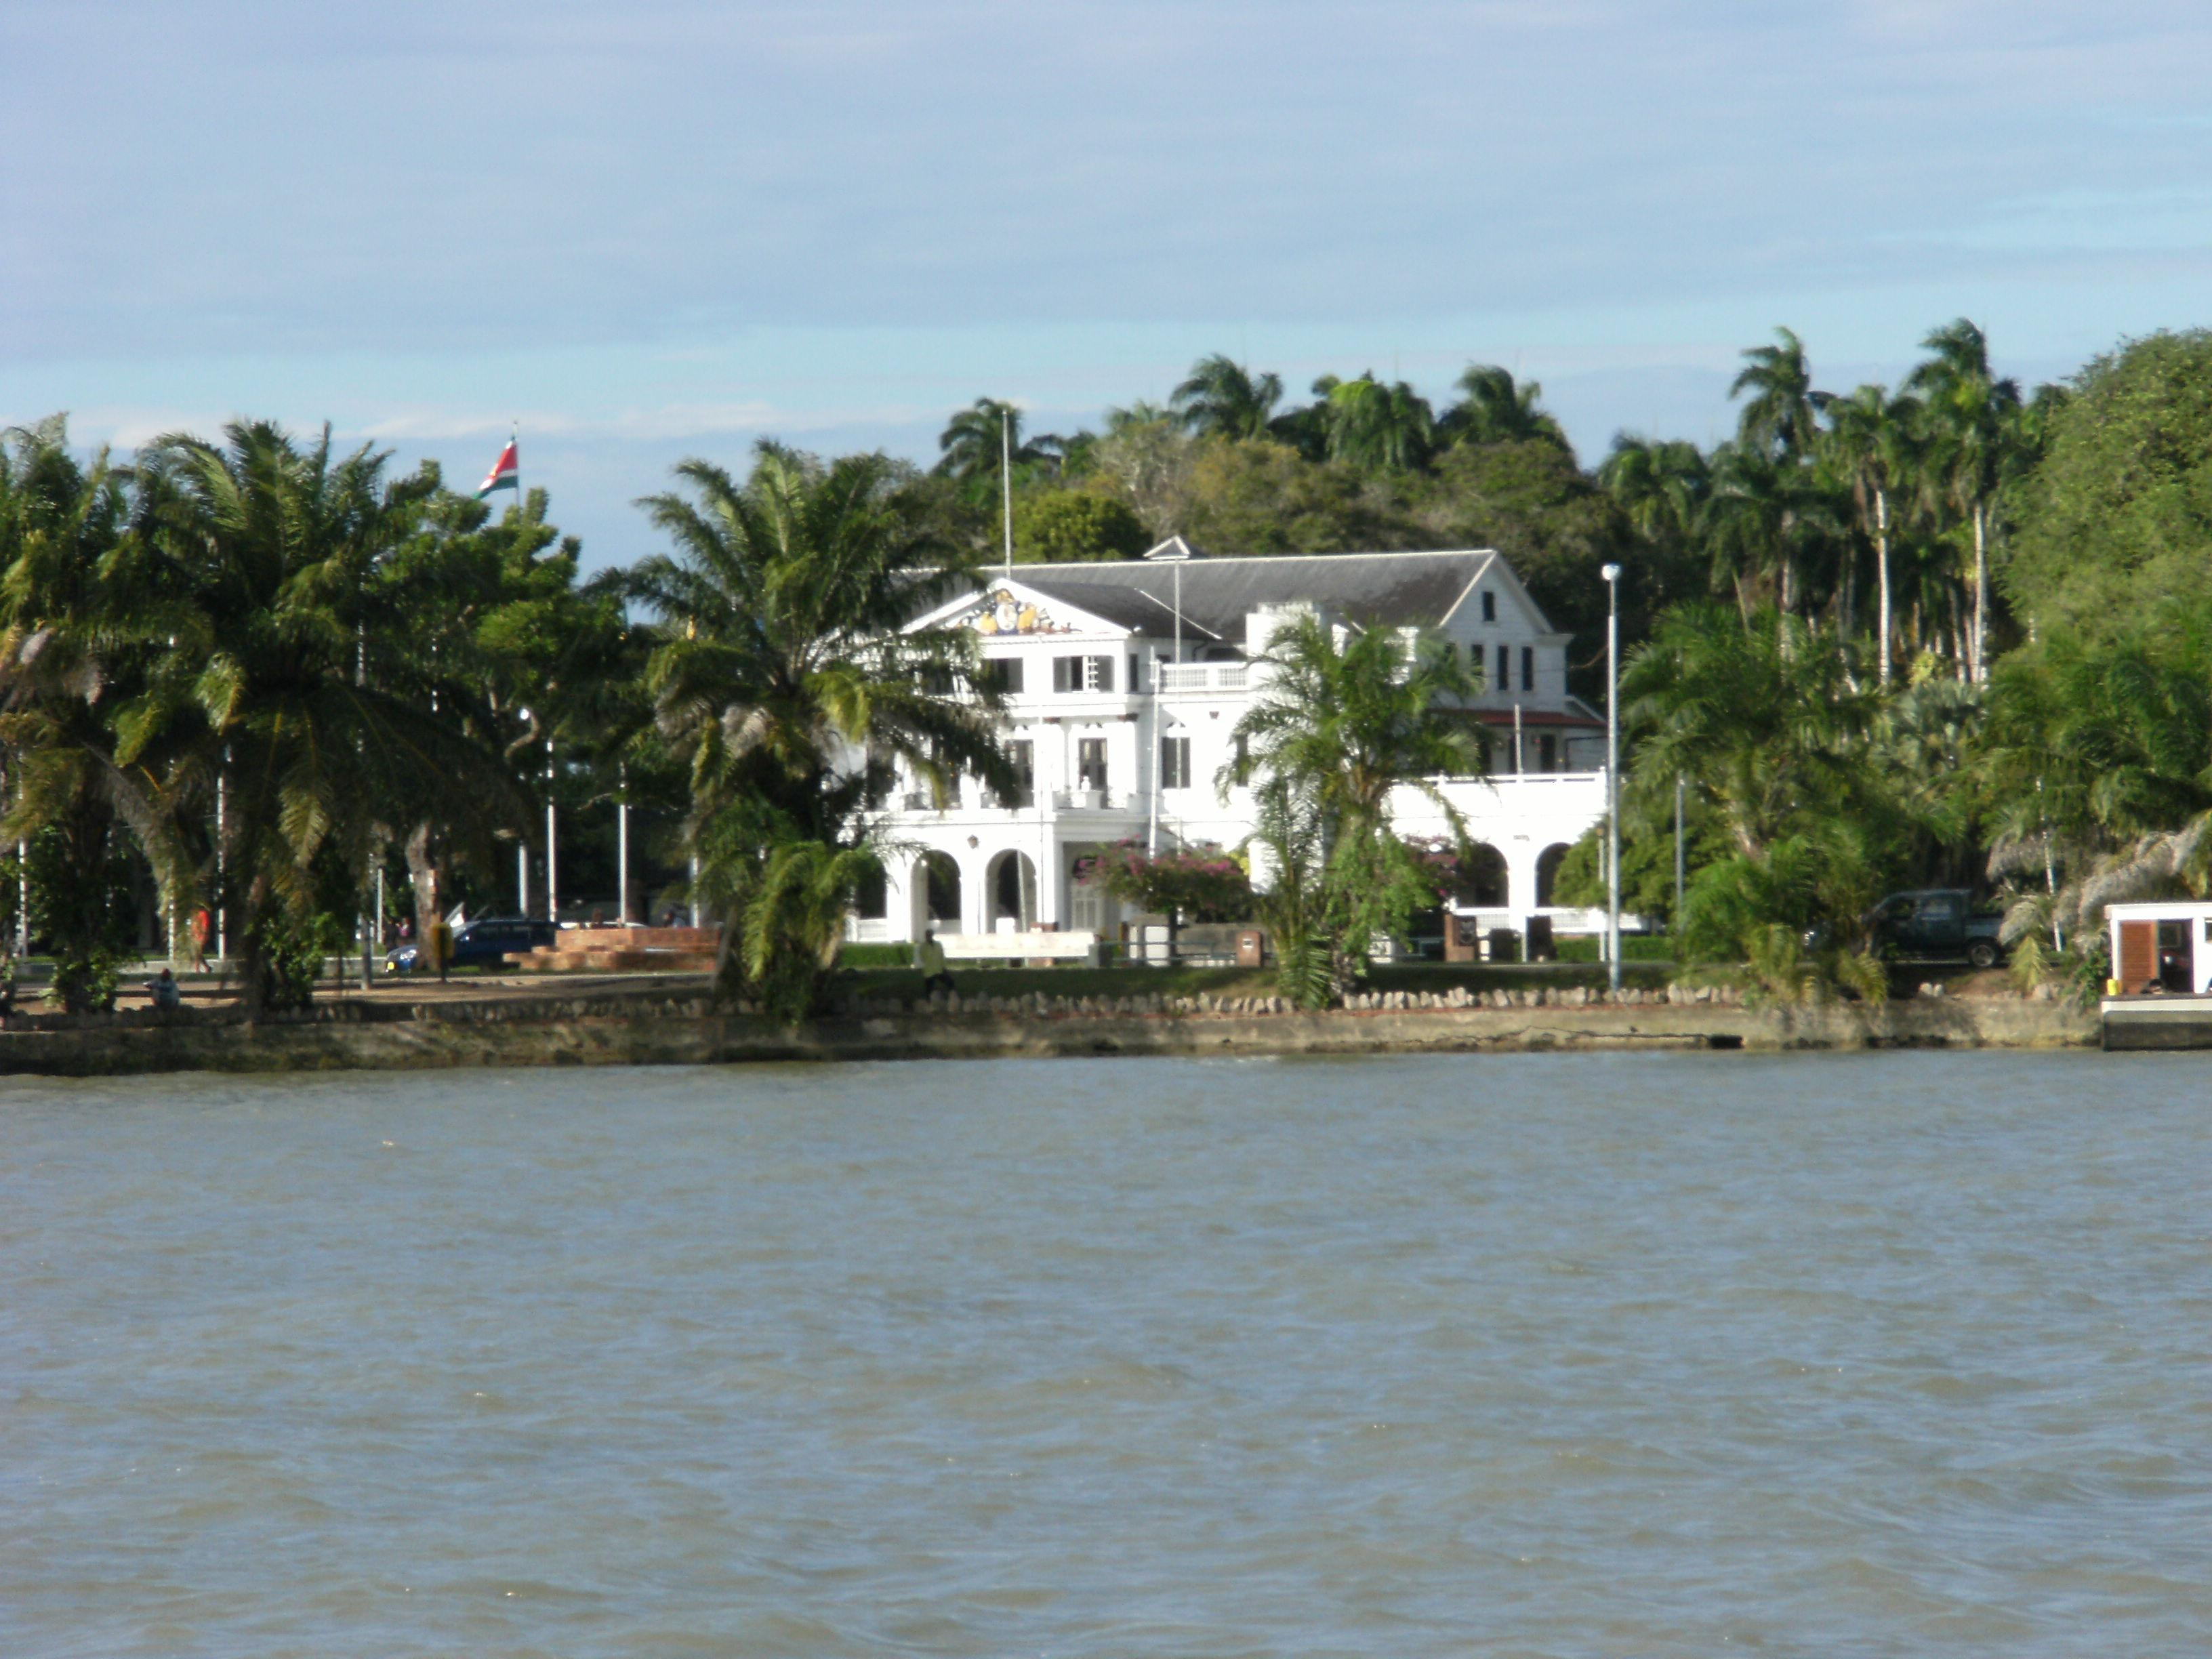 File:Presidential palace seen from Suriname river.JPG